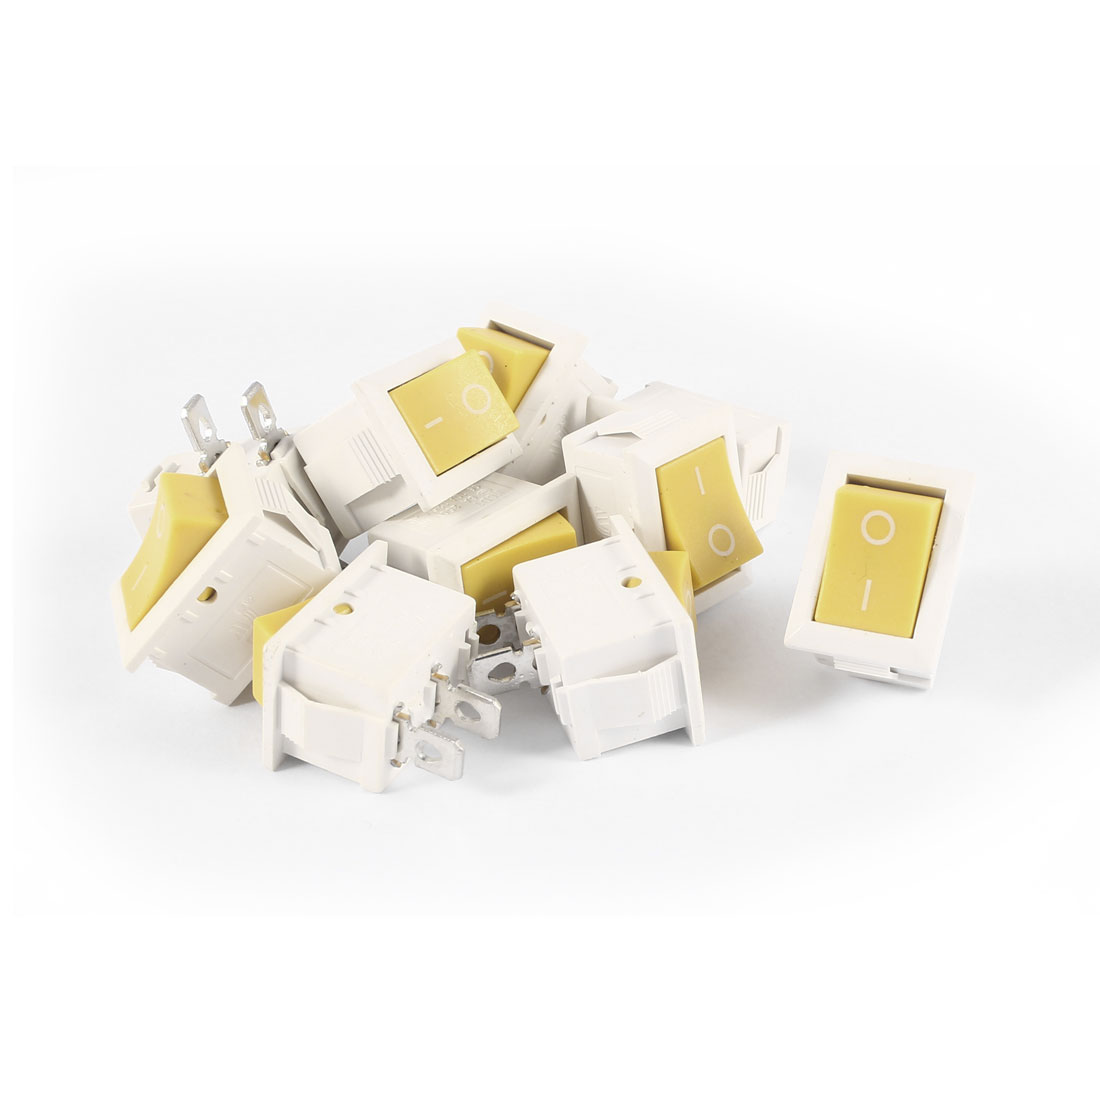 10 Pcs KCD1 AC 250V 6A 125V 10A 2Pin SPST Power ON/OFF Panel Mount Rocker Switch Yellow White